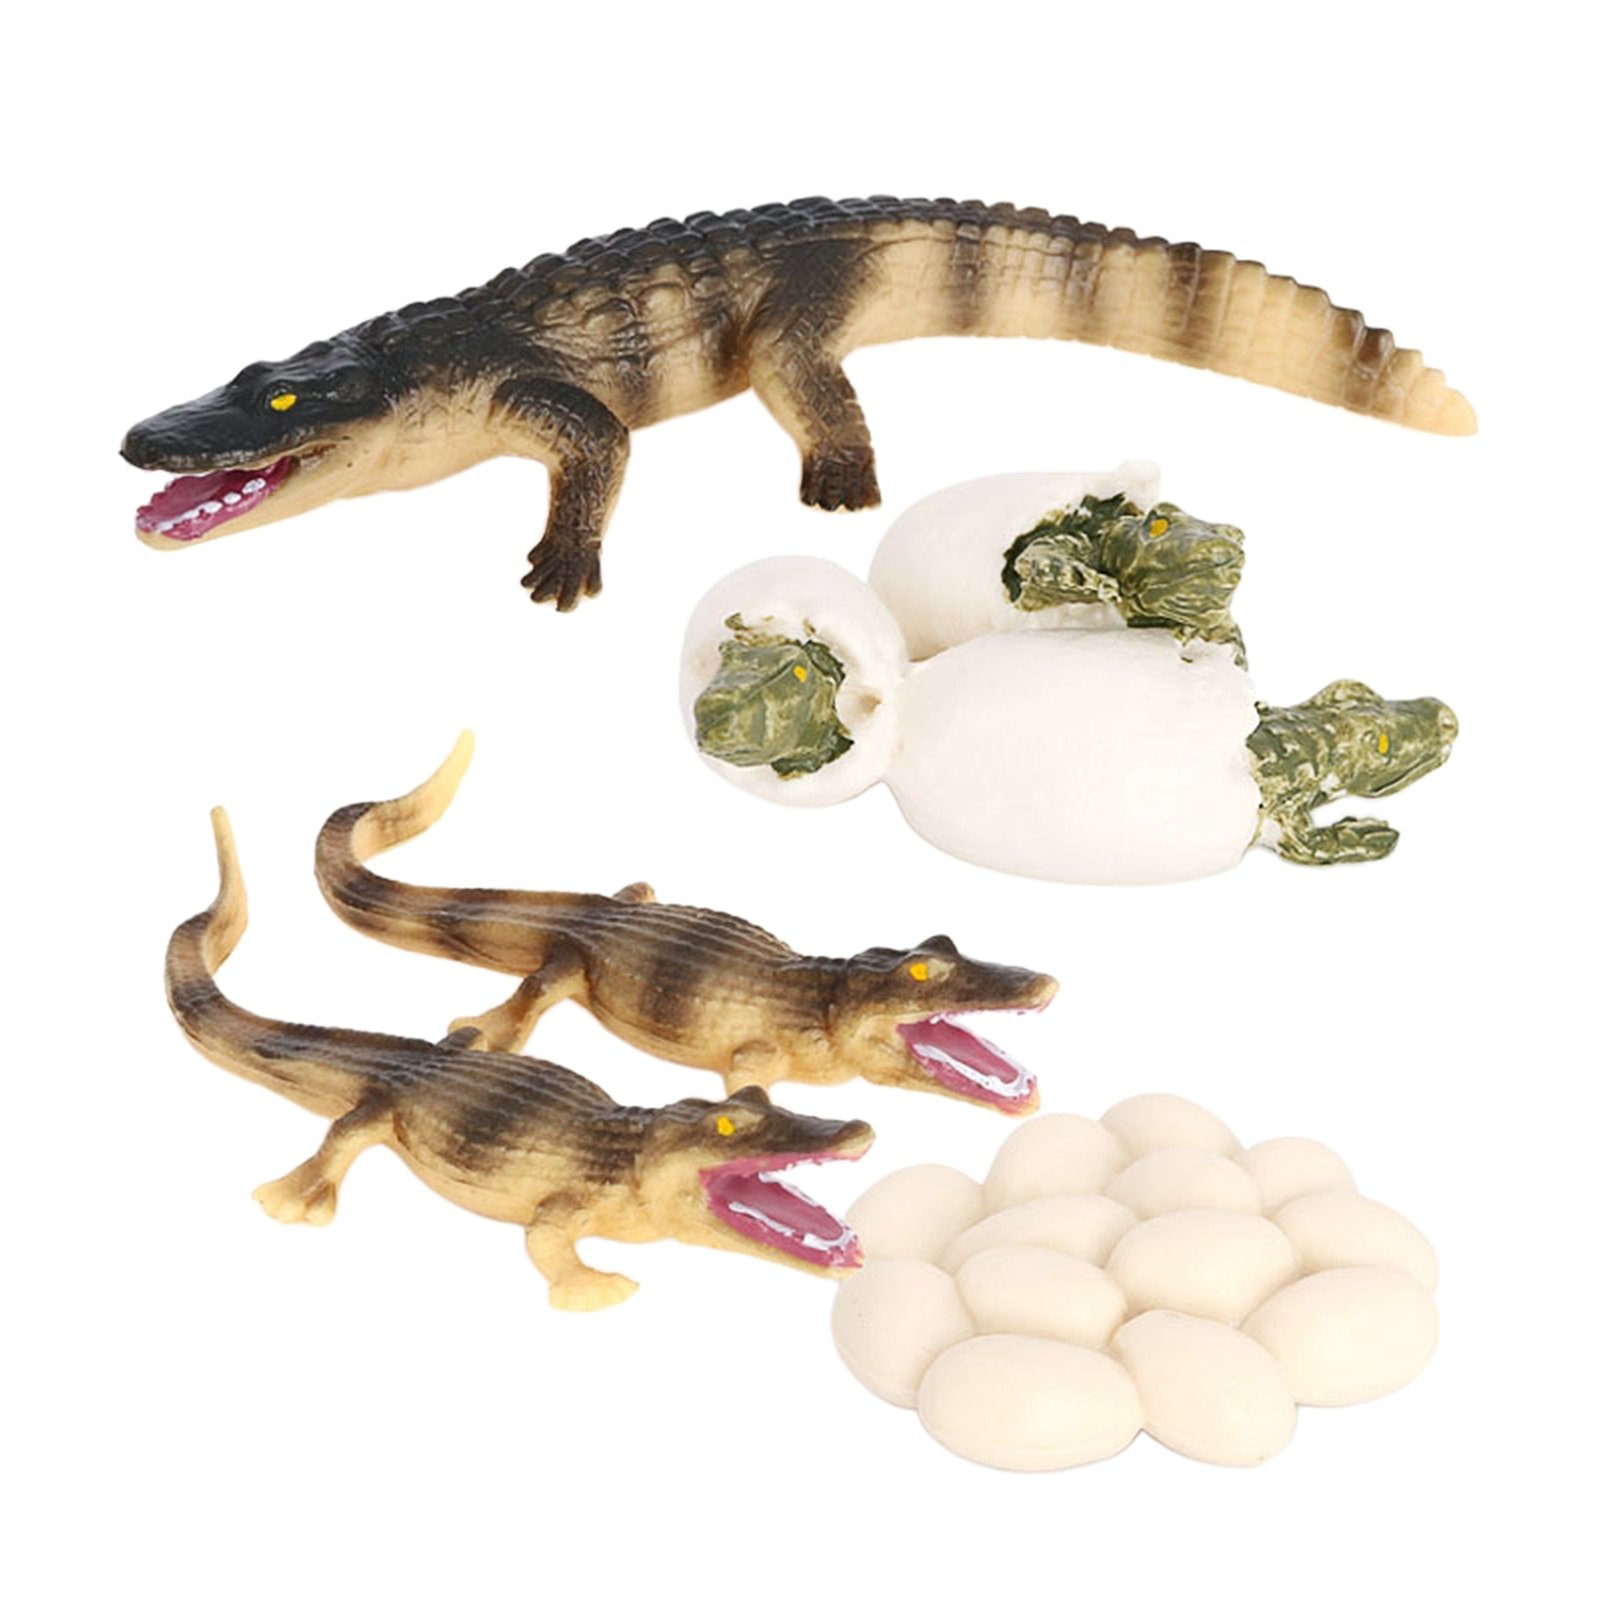 Фото - 4 Stages Life Cycle of Crocodile Nature Insects Life Cycles Growth Model Game Prop Insect Animal Natural Toy katie marsico life cycles